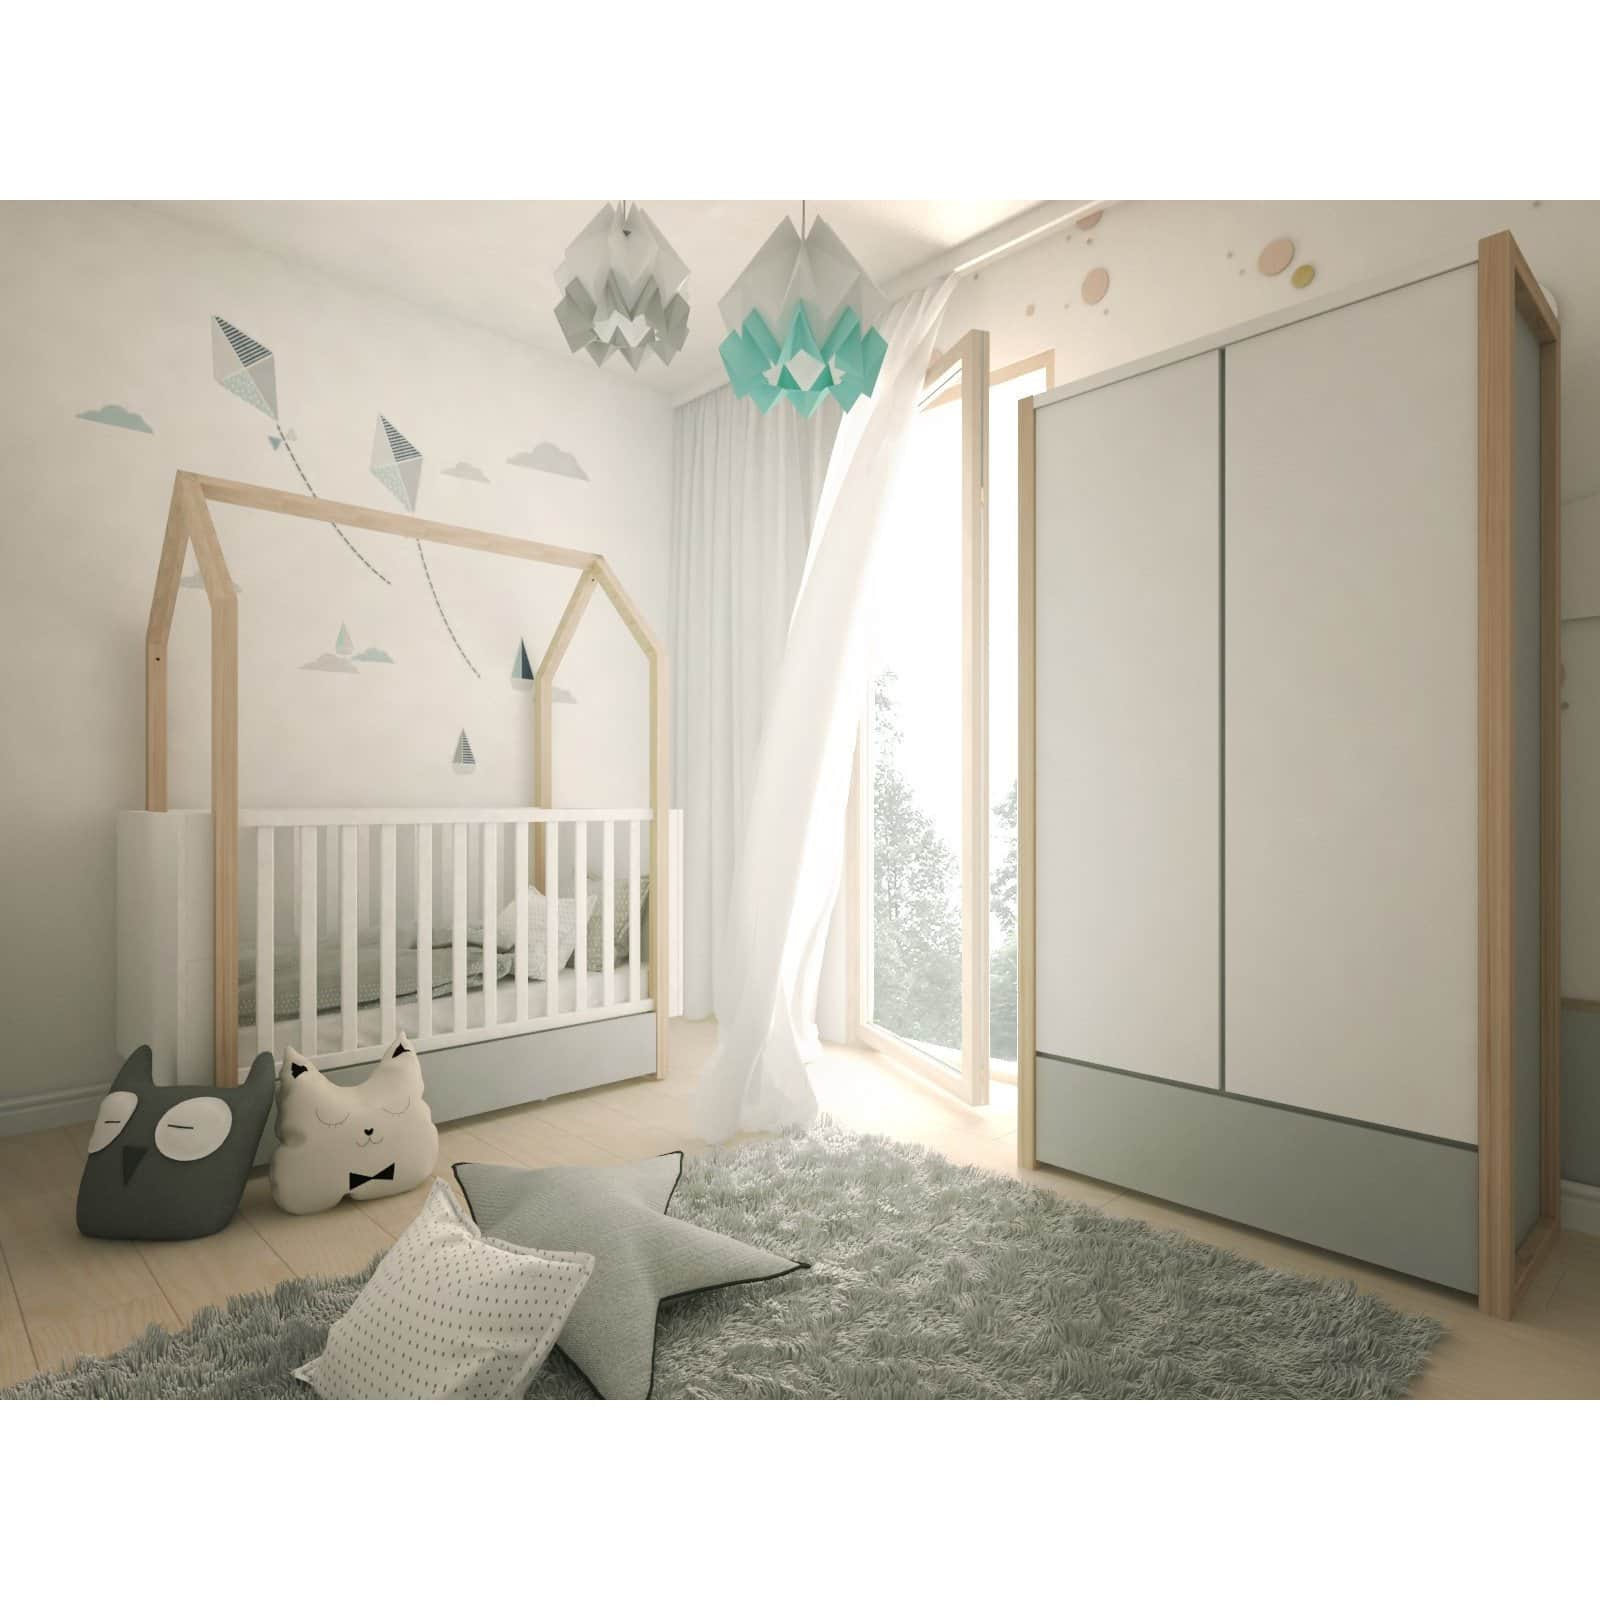 Pinette - 2 Door Wardrobe with Drawer in Pine, White & Grey